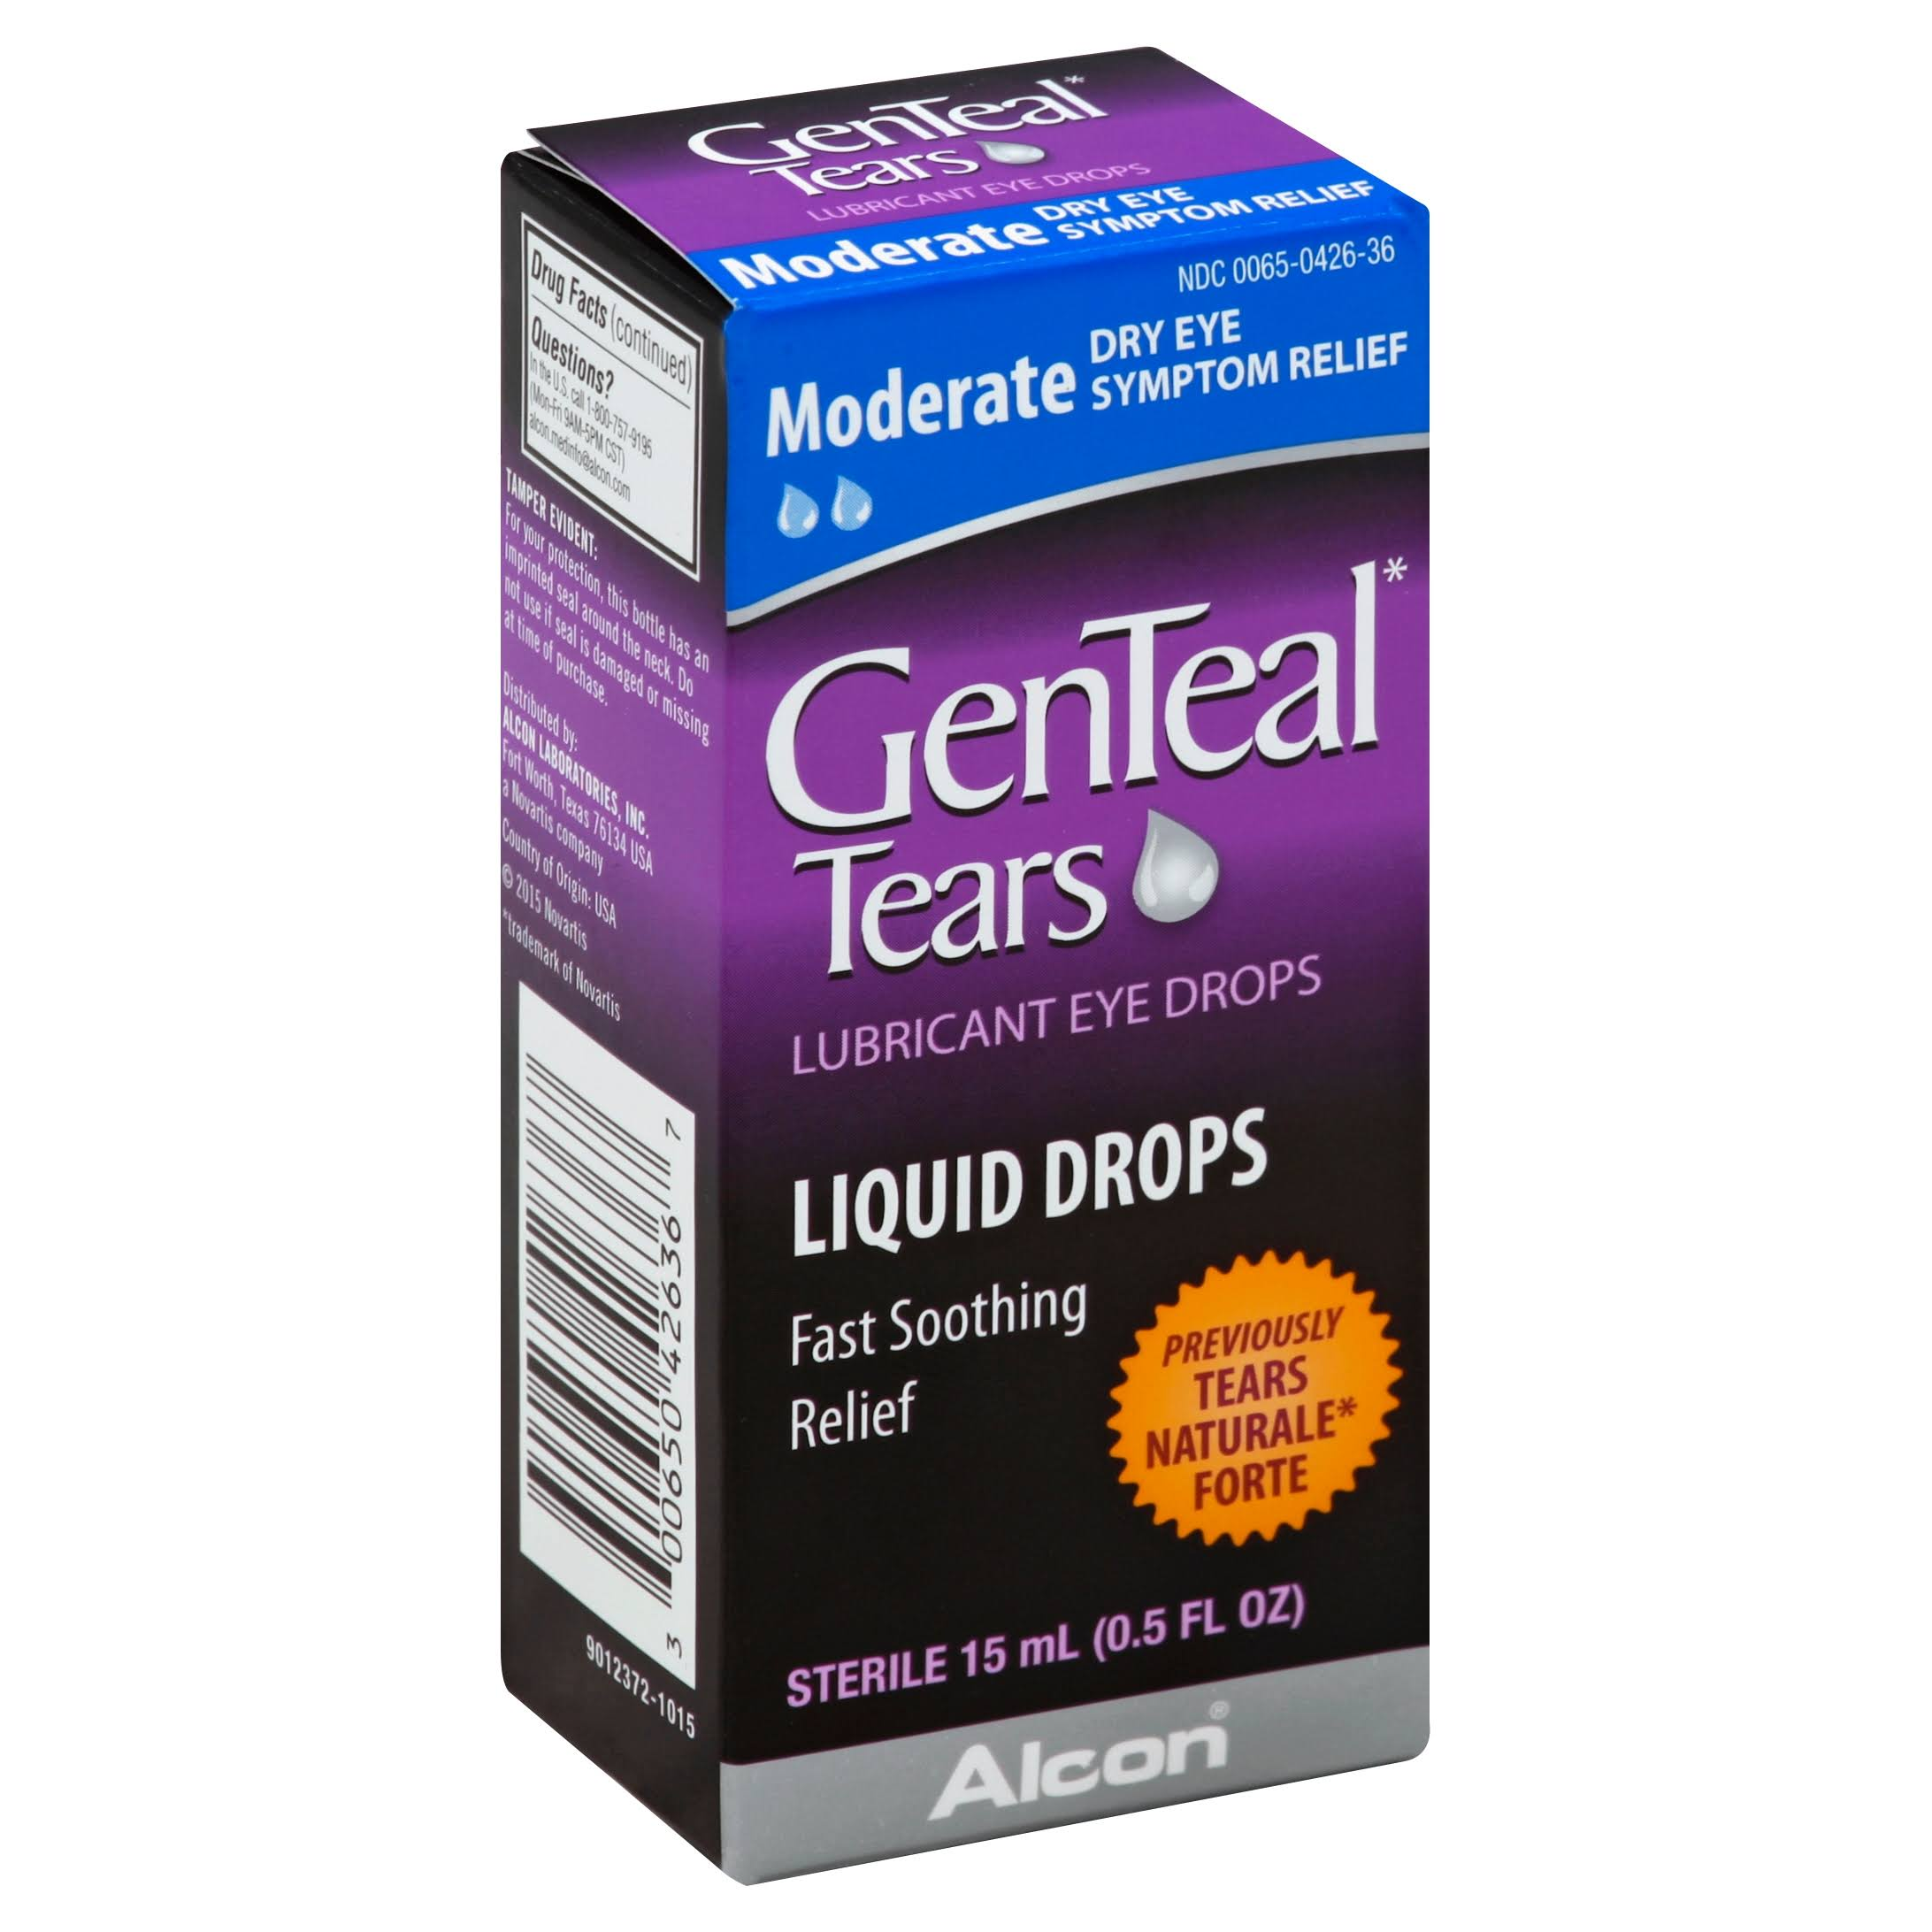 GenTeal Tears Liquid Eye Drops - 15ml